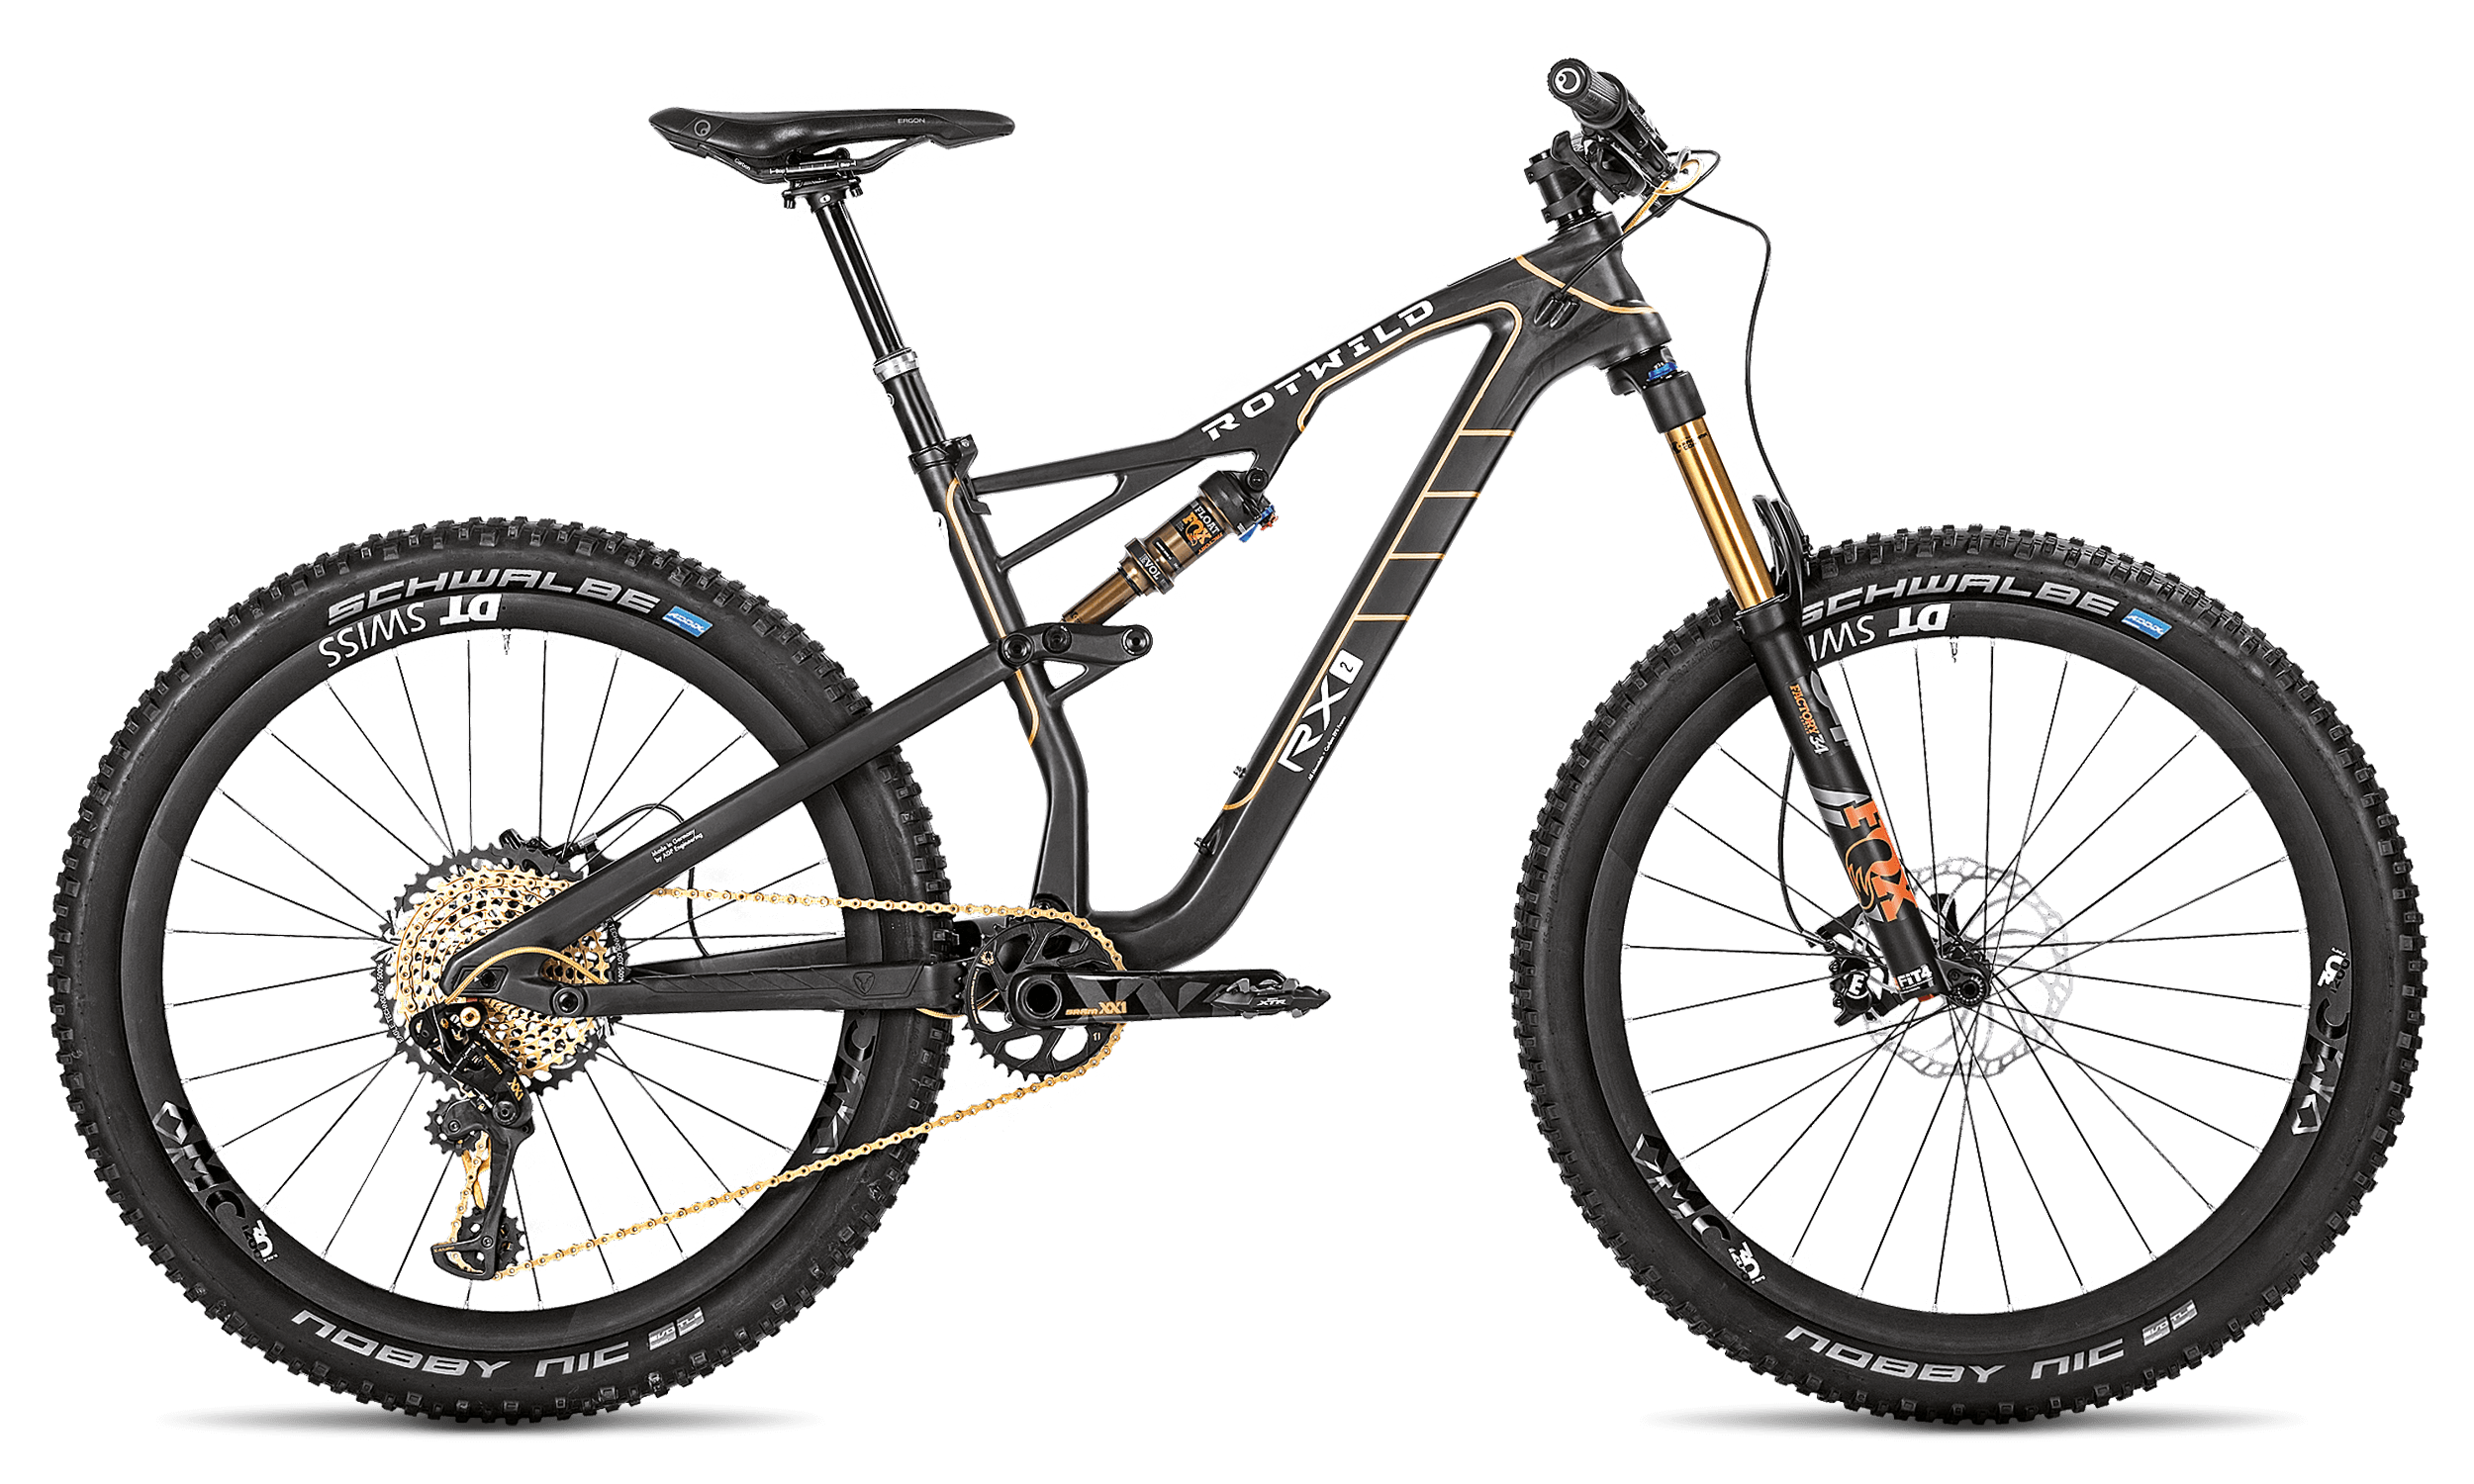 R.X2 TRAIL (27.5) LIMITED - CARBON LTD - M - R.X2 TRAIL (27.5) LIMITED - CARBON LTD - M